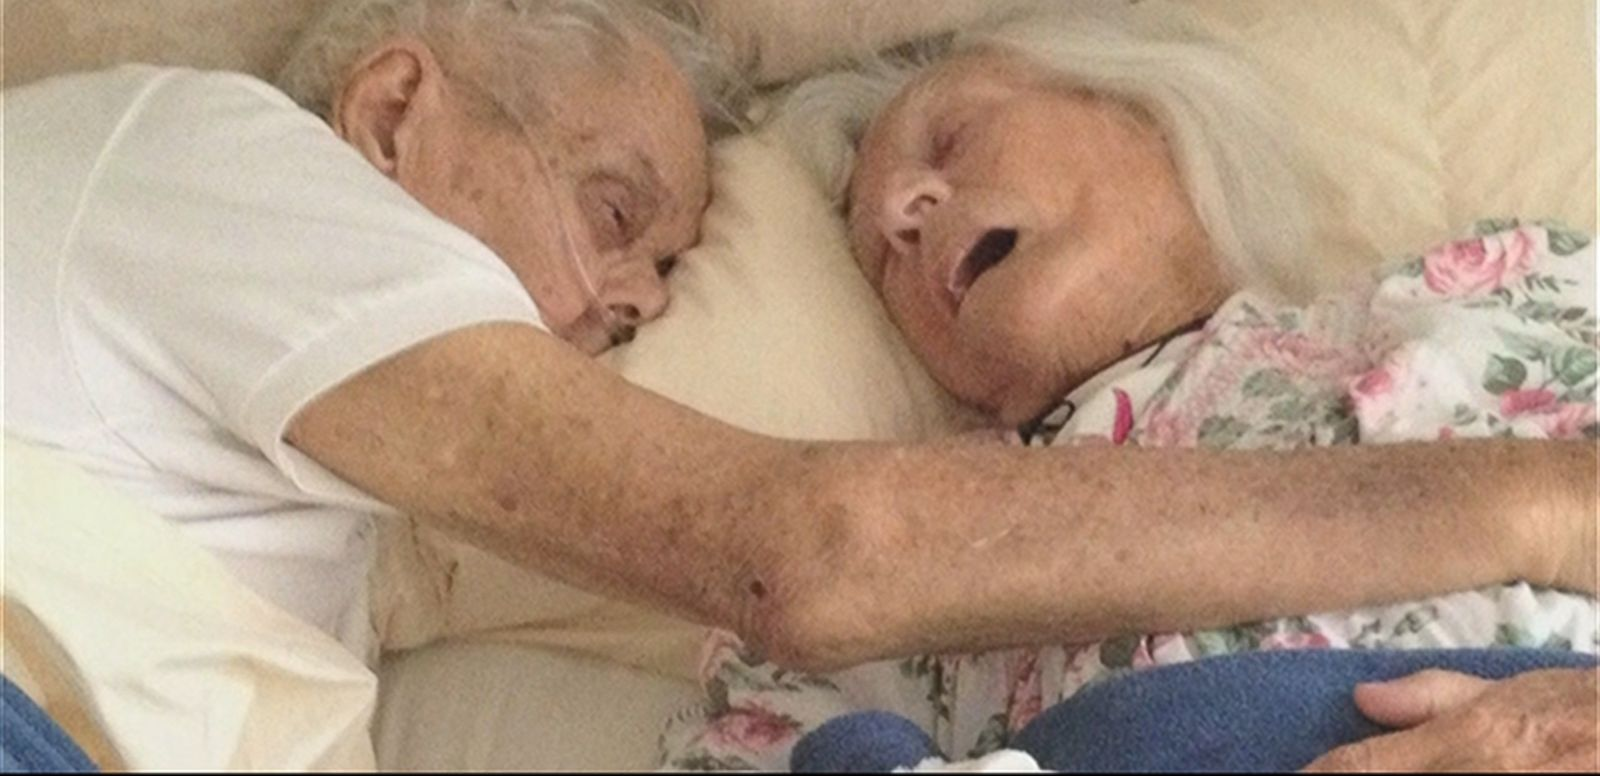 VIDEO: Jeanette and Alexander Toczko spent their lives in love.